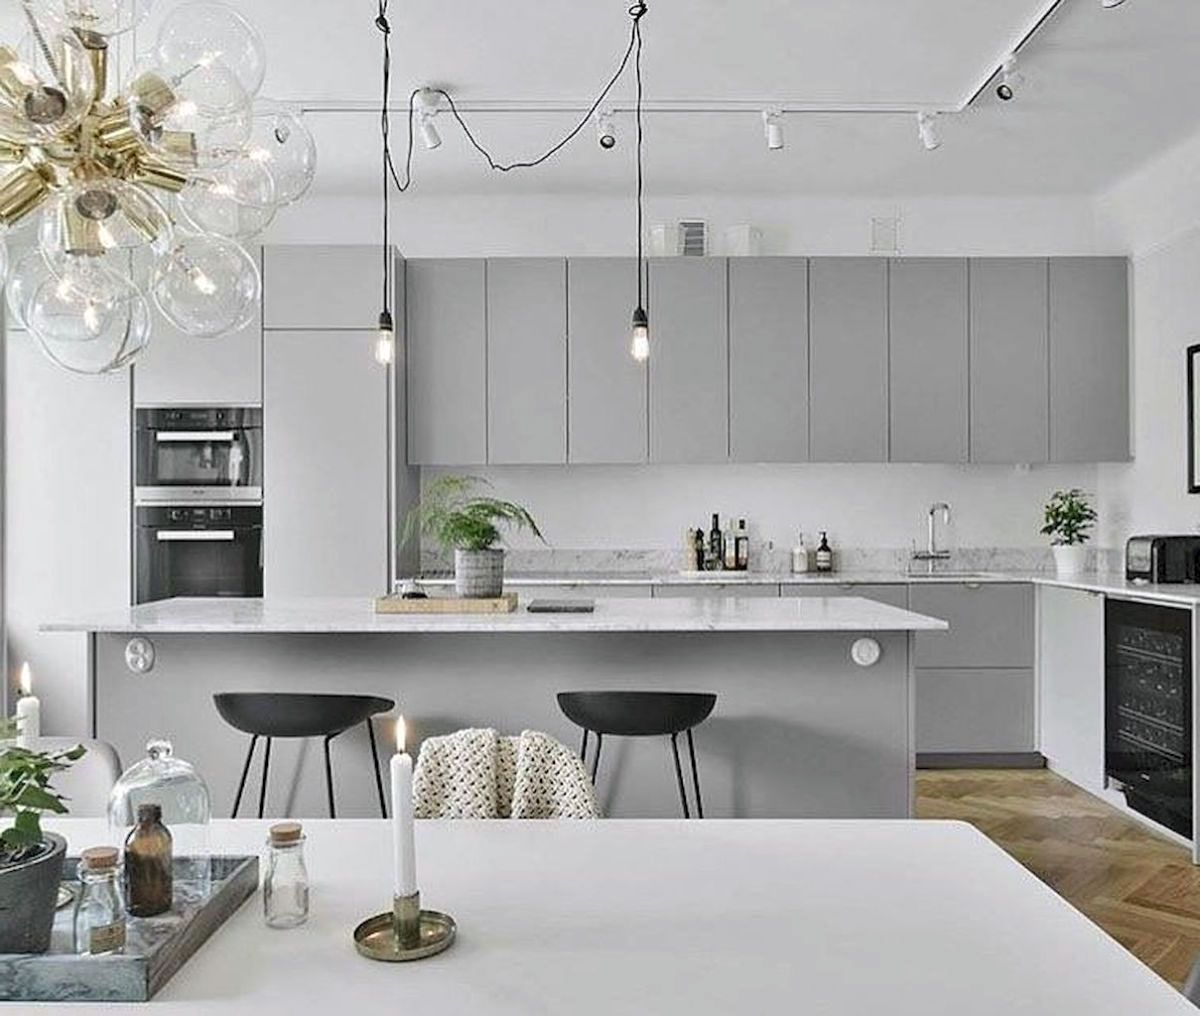 Gorgeous Scandinavian Kitchen With Grey Color Ideas In 2020 Scandinavian Kitchen Design Scandinavian Kitchen Kitchen Design Countertops